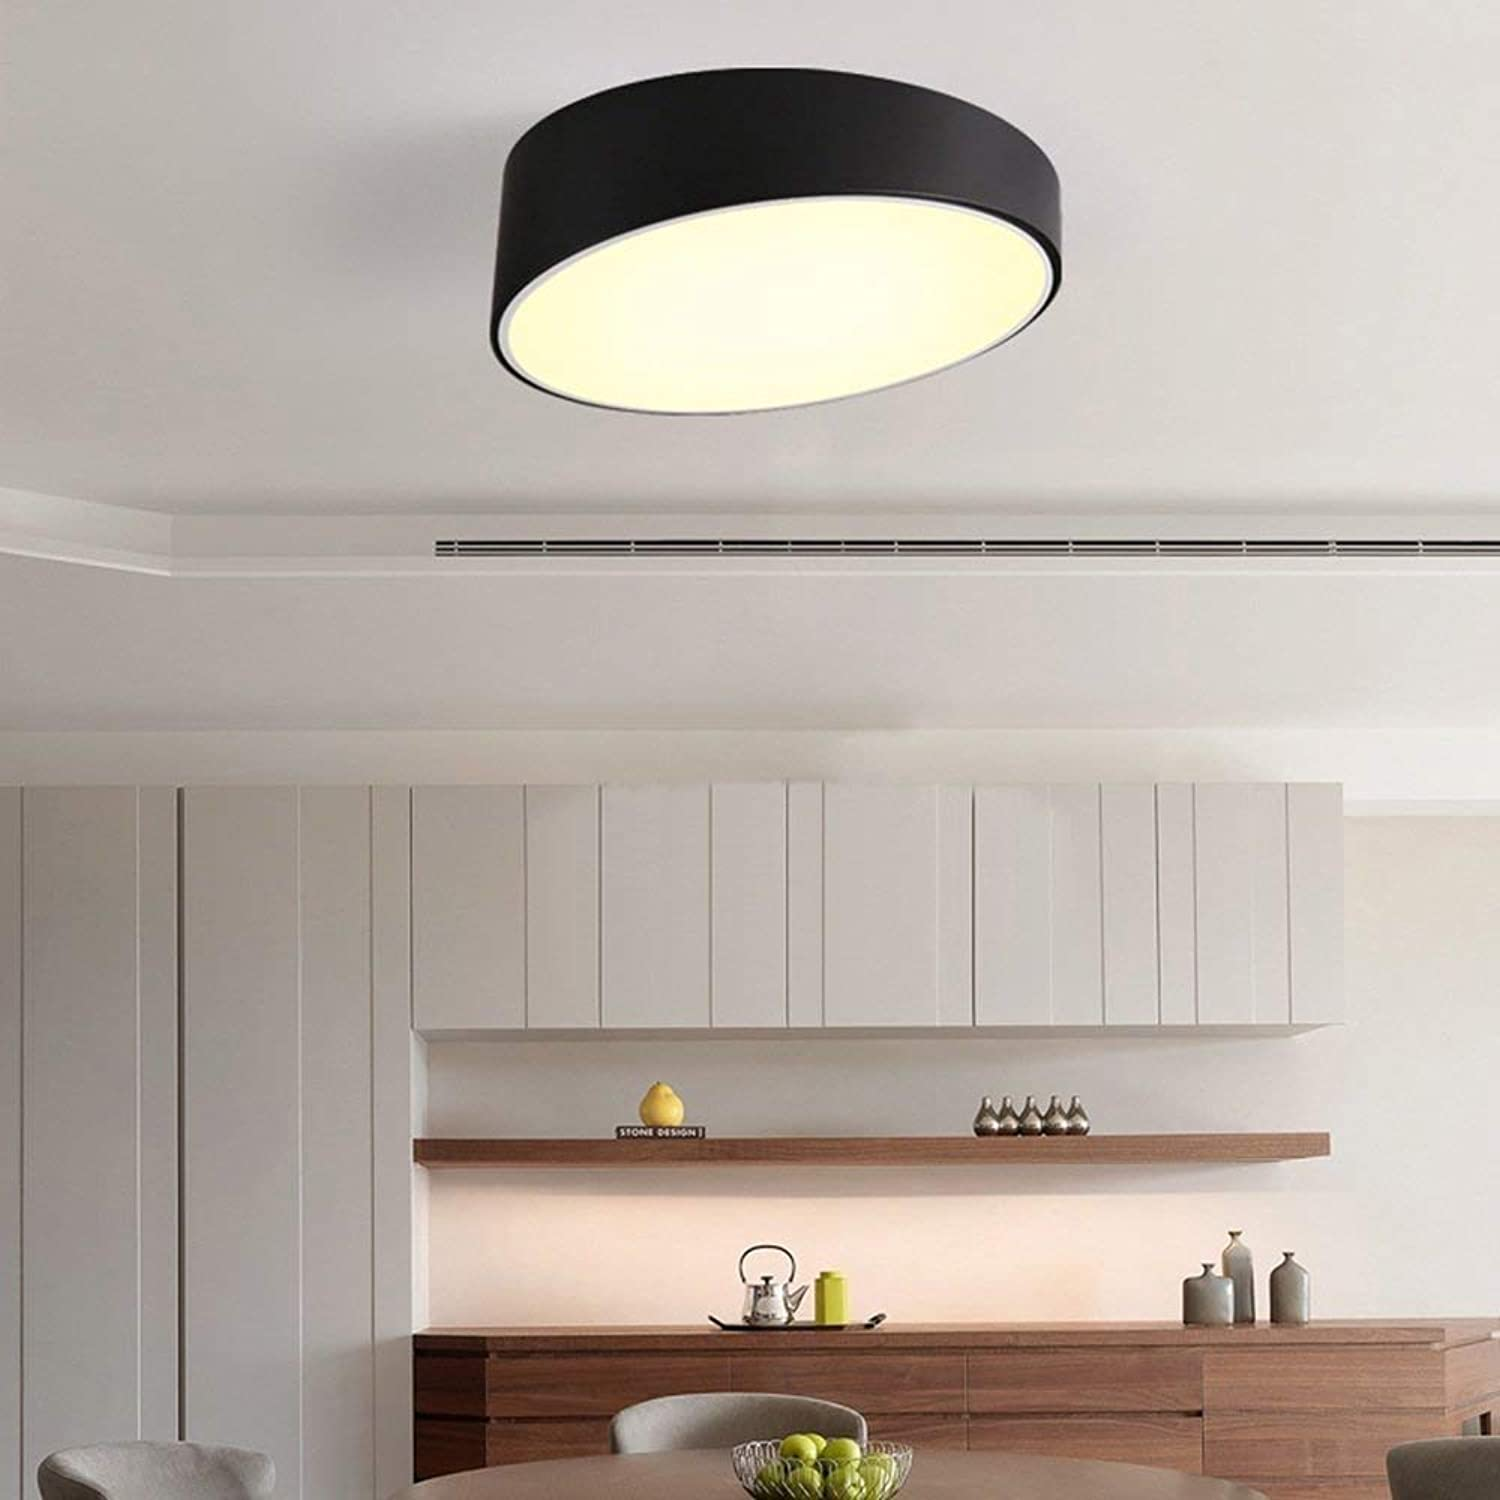 YWGYZ Irons Loft Industrial Controlled Style Restaurant Café Retro Lively Personality Ceiling Lights Ceiling Lights, Two Styles Optional,BlackPromise Dimming50cm